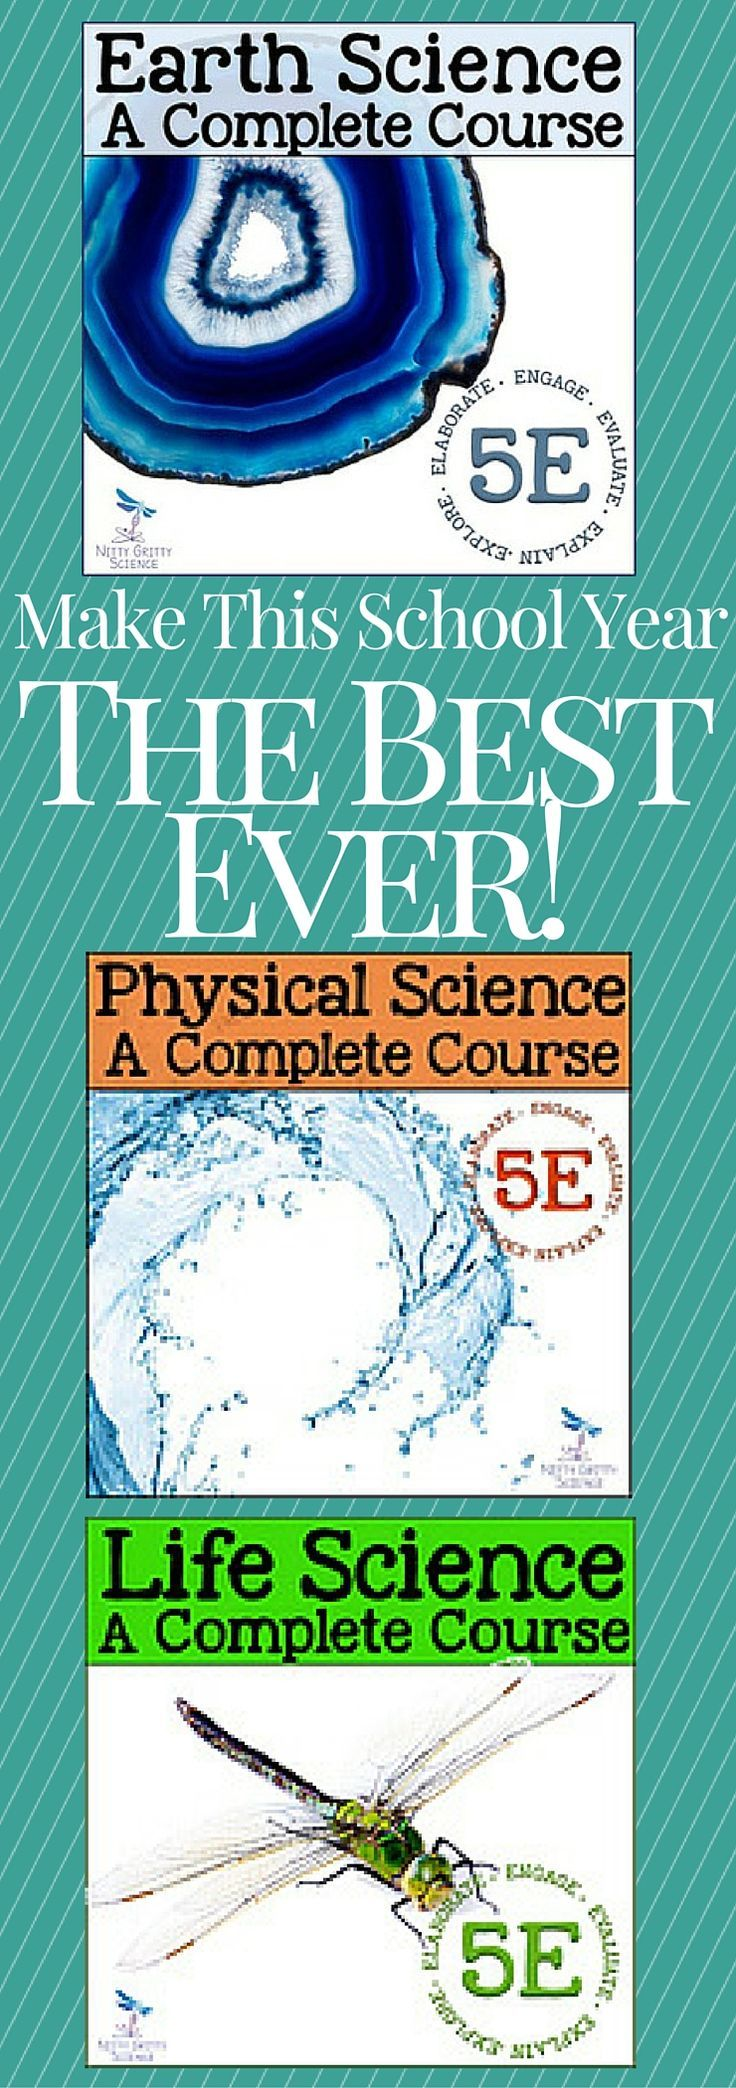 Make this the BEST school year ever! This collection of Science Resources is a complete curriculum that is based on the Next Generation Science Standards and uses the 5E Model for implementation.  They are a GROWING BUNDLE since I am currently adding Demos, Labs and Science Stations for each topic covered, added throughout the 2016-2017 school year.